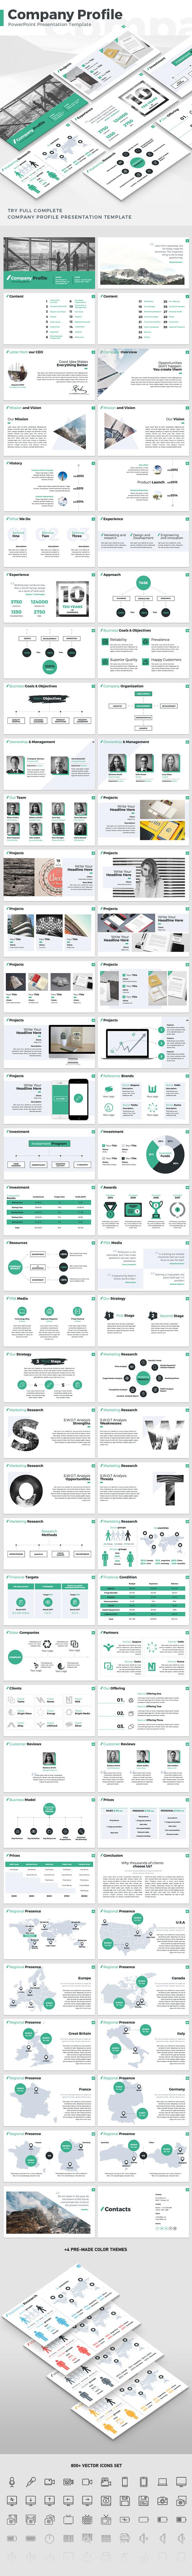 Company Profile - PowerPoint Presentation Template - PowerPoint Templates Presentation Templates